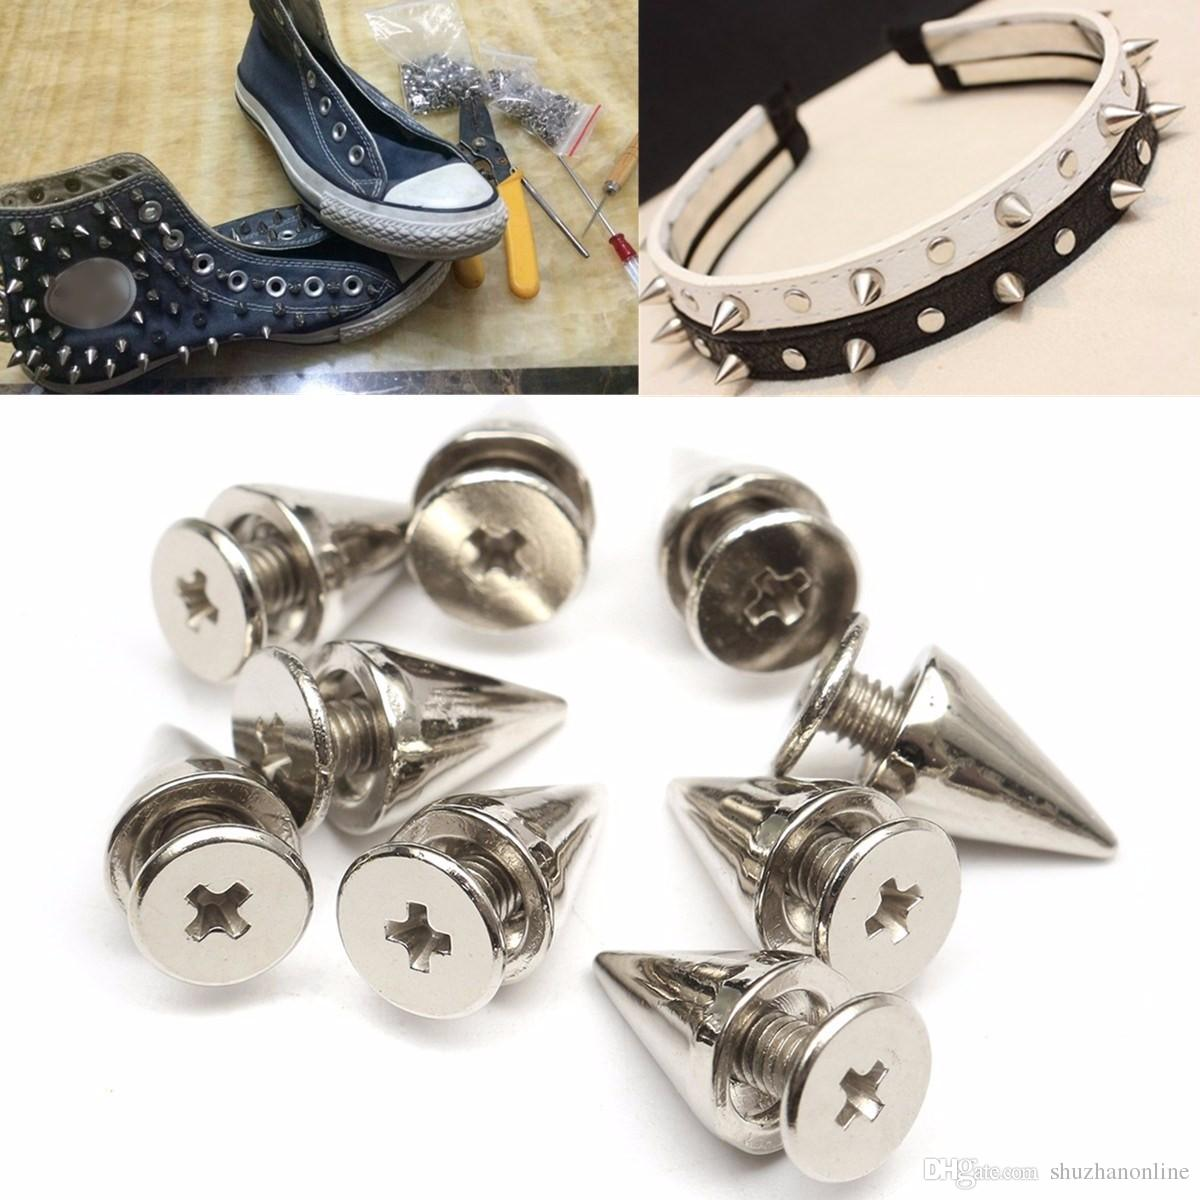 7x10mm Metal Silver Studs Rivet Bullet Spike Cone Screw For Leather Craft